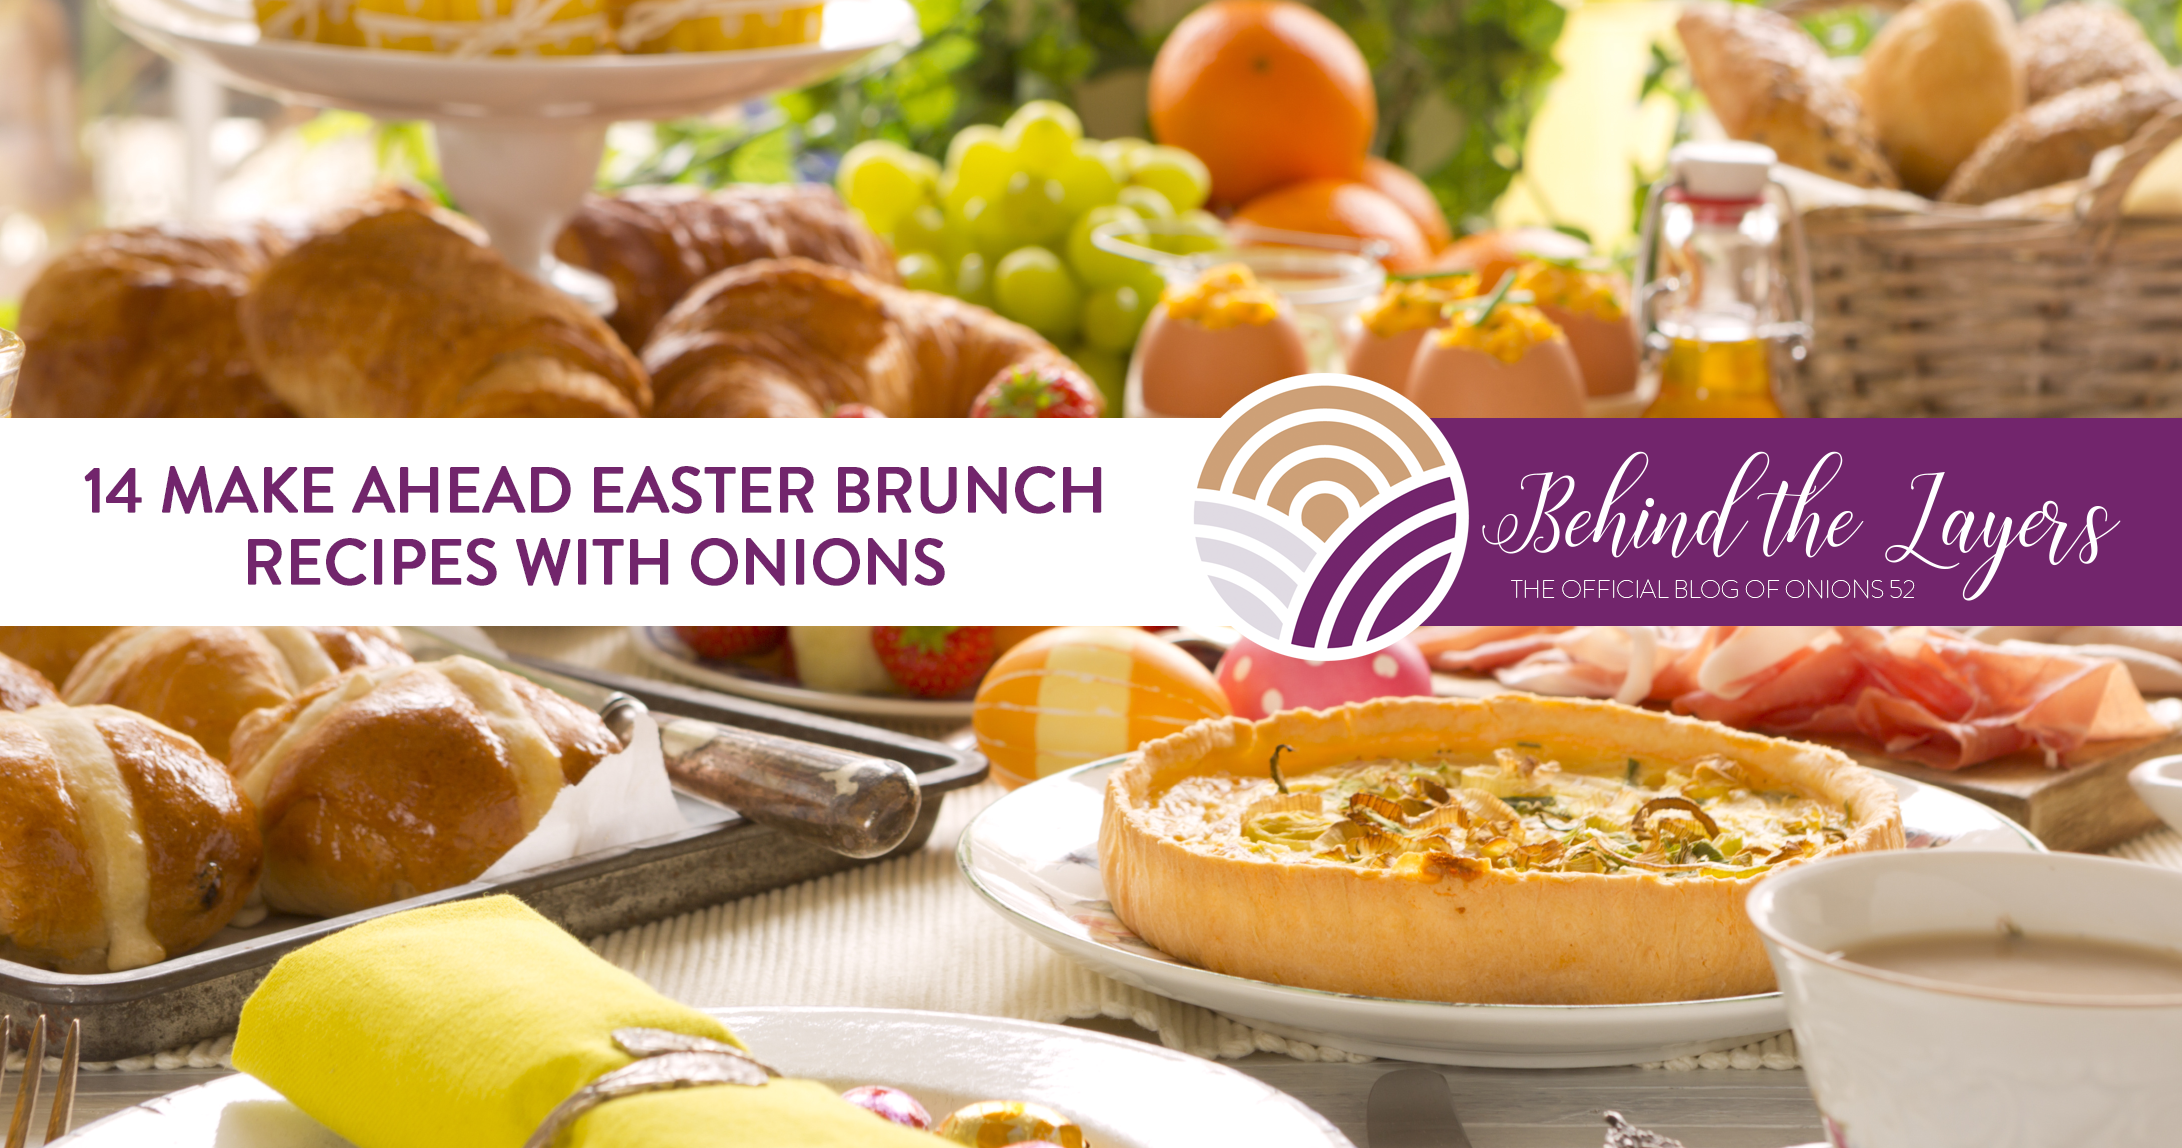 14 Make-Ahead Easter Brunch Recipes with Onions